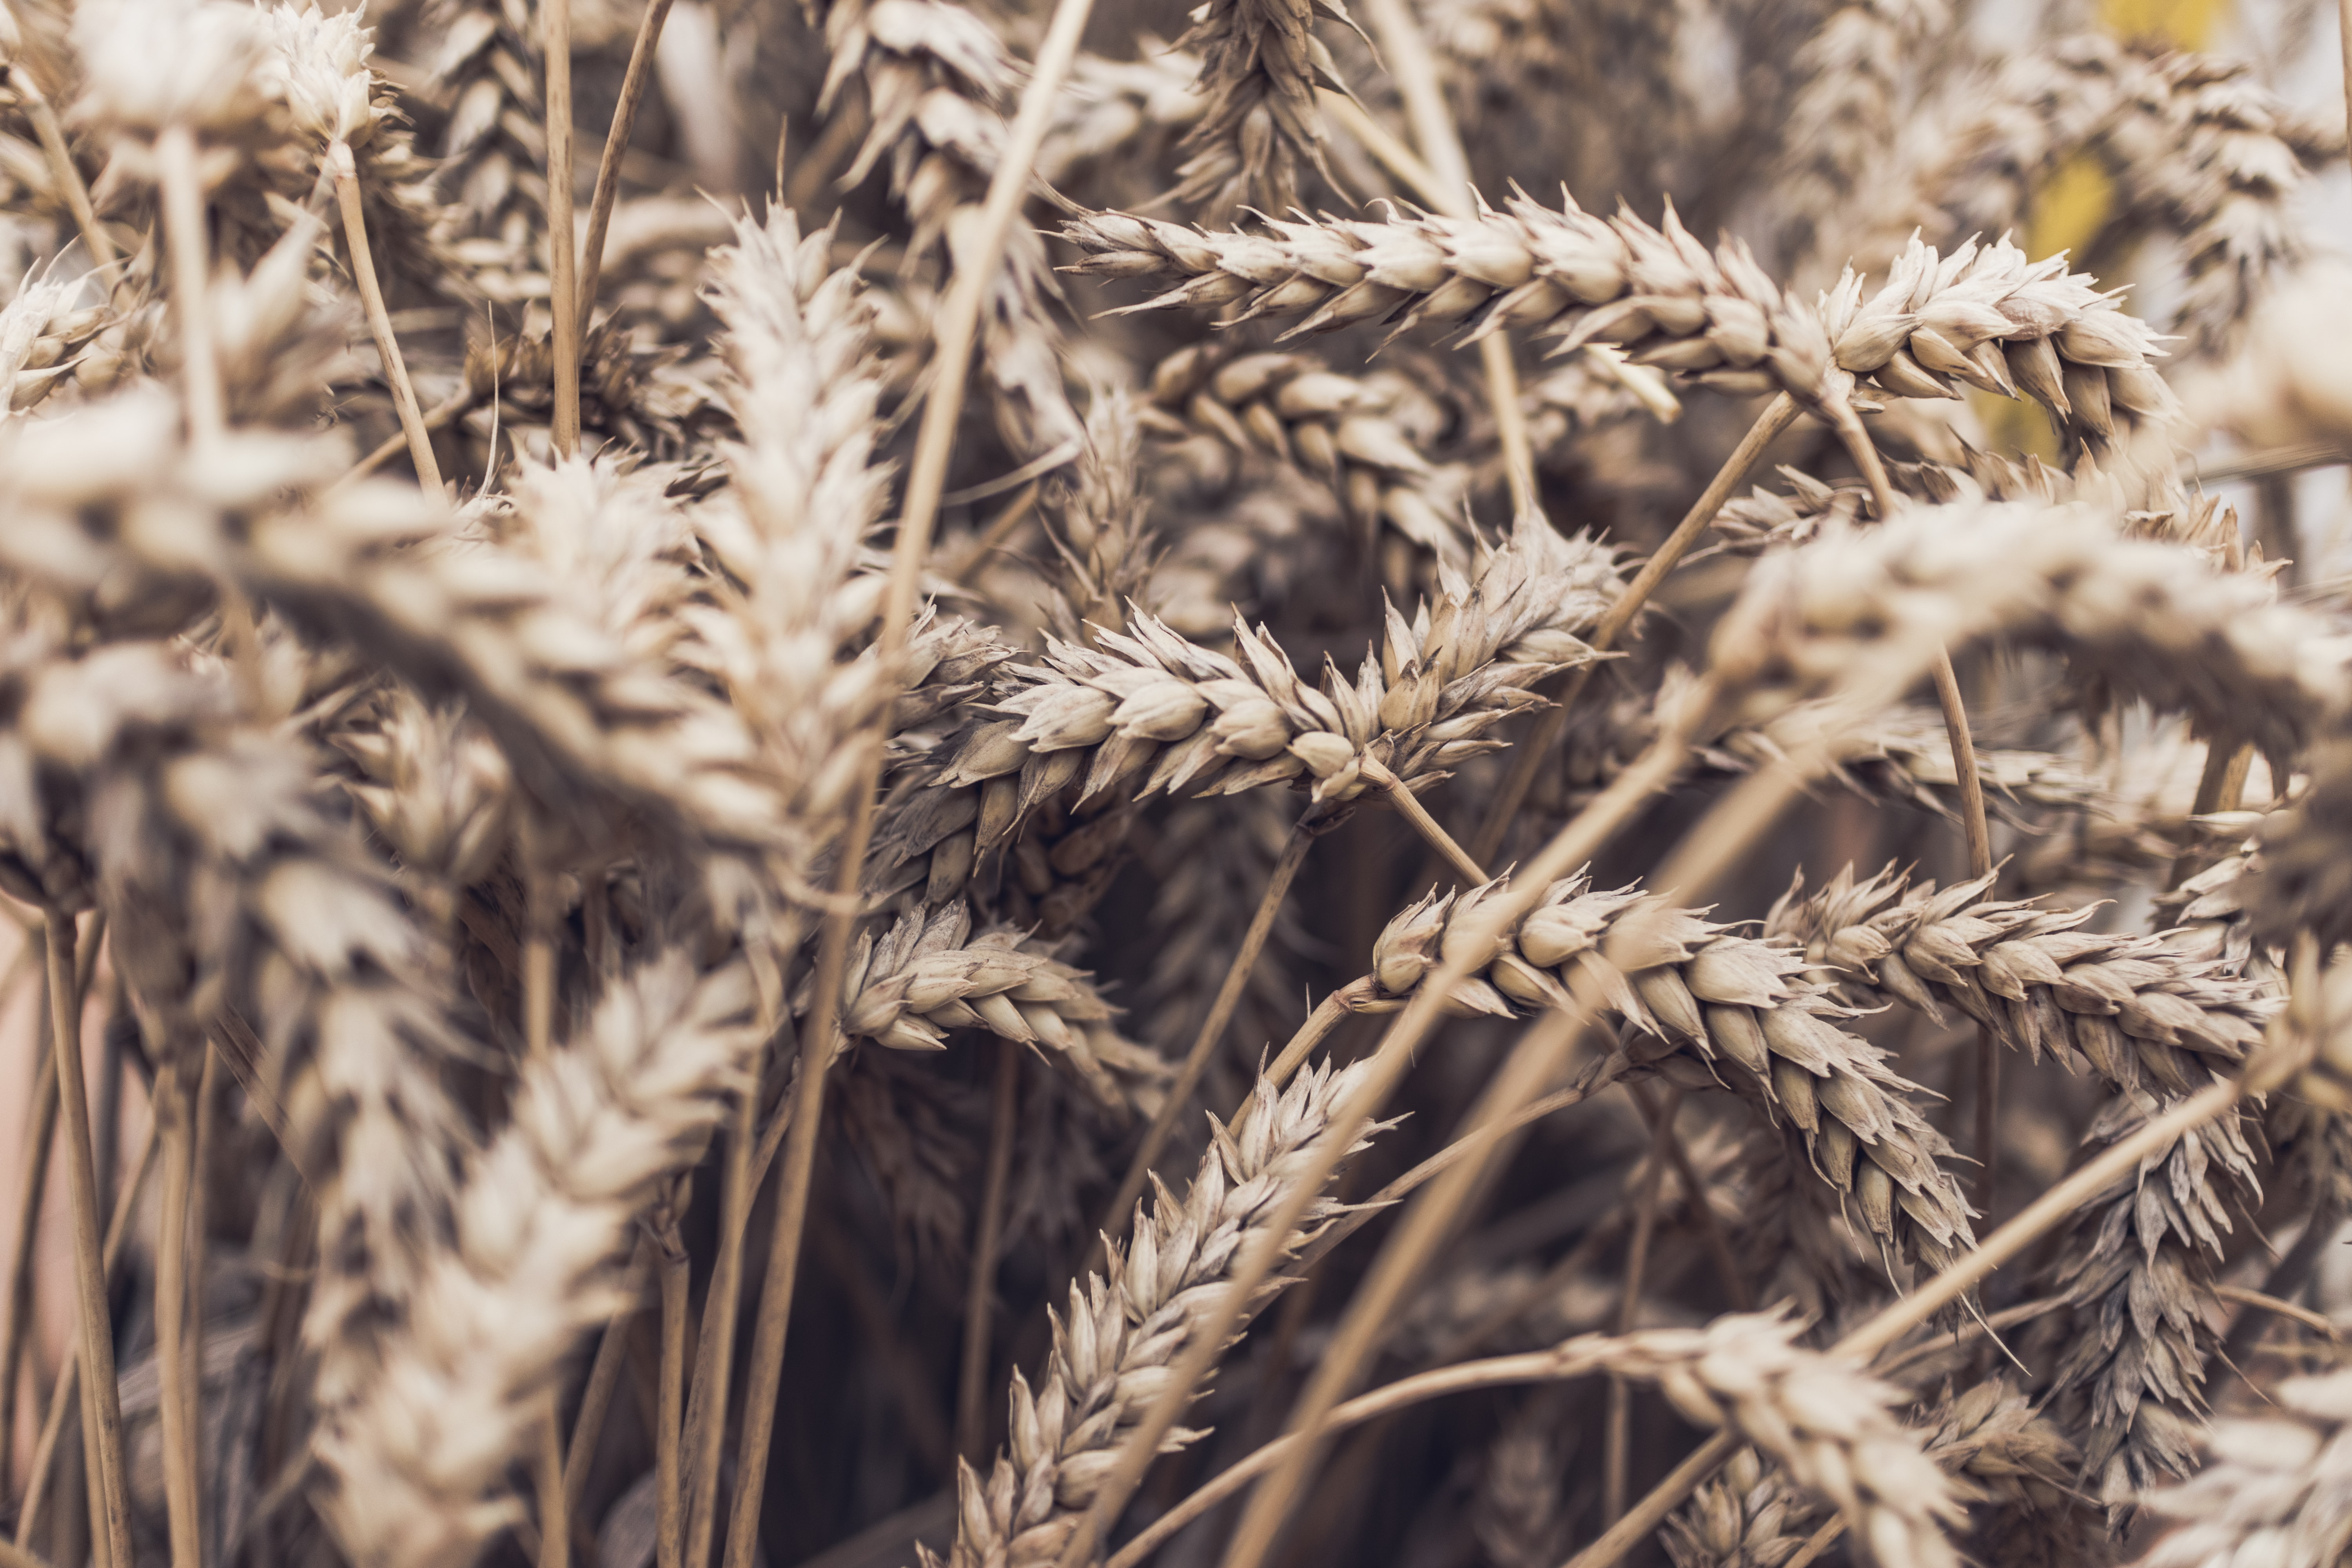 Plant oats for your fall garden chores